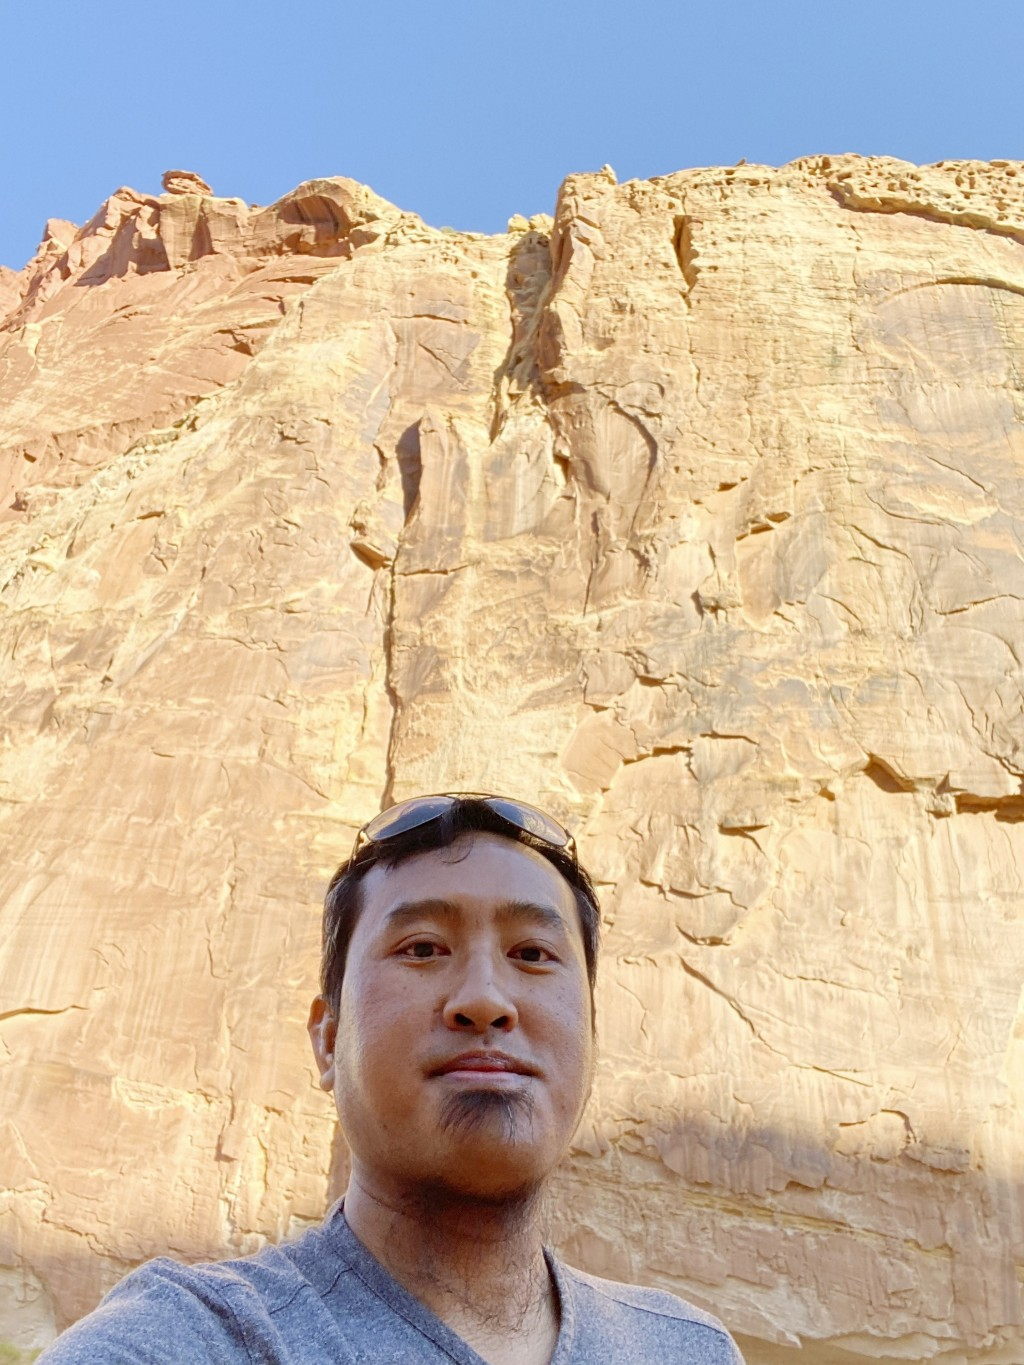 In this Aug. 15, 2020, photo provided by Lian Kual, resettled refugee Kual, originally from Myanmar, stands against a rock wall in the Capitol Reef Na...